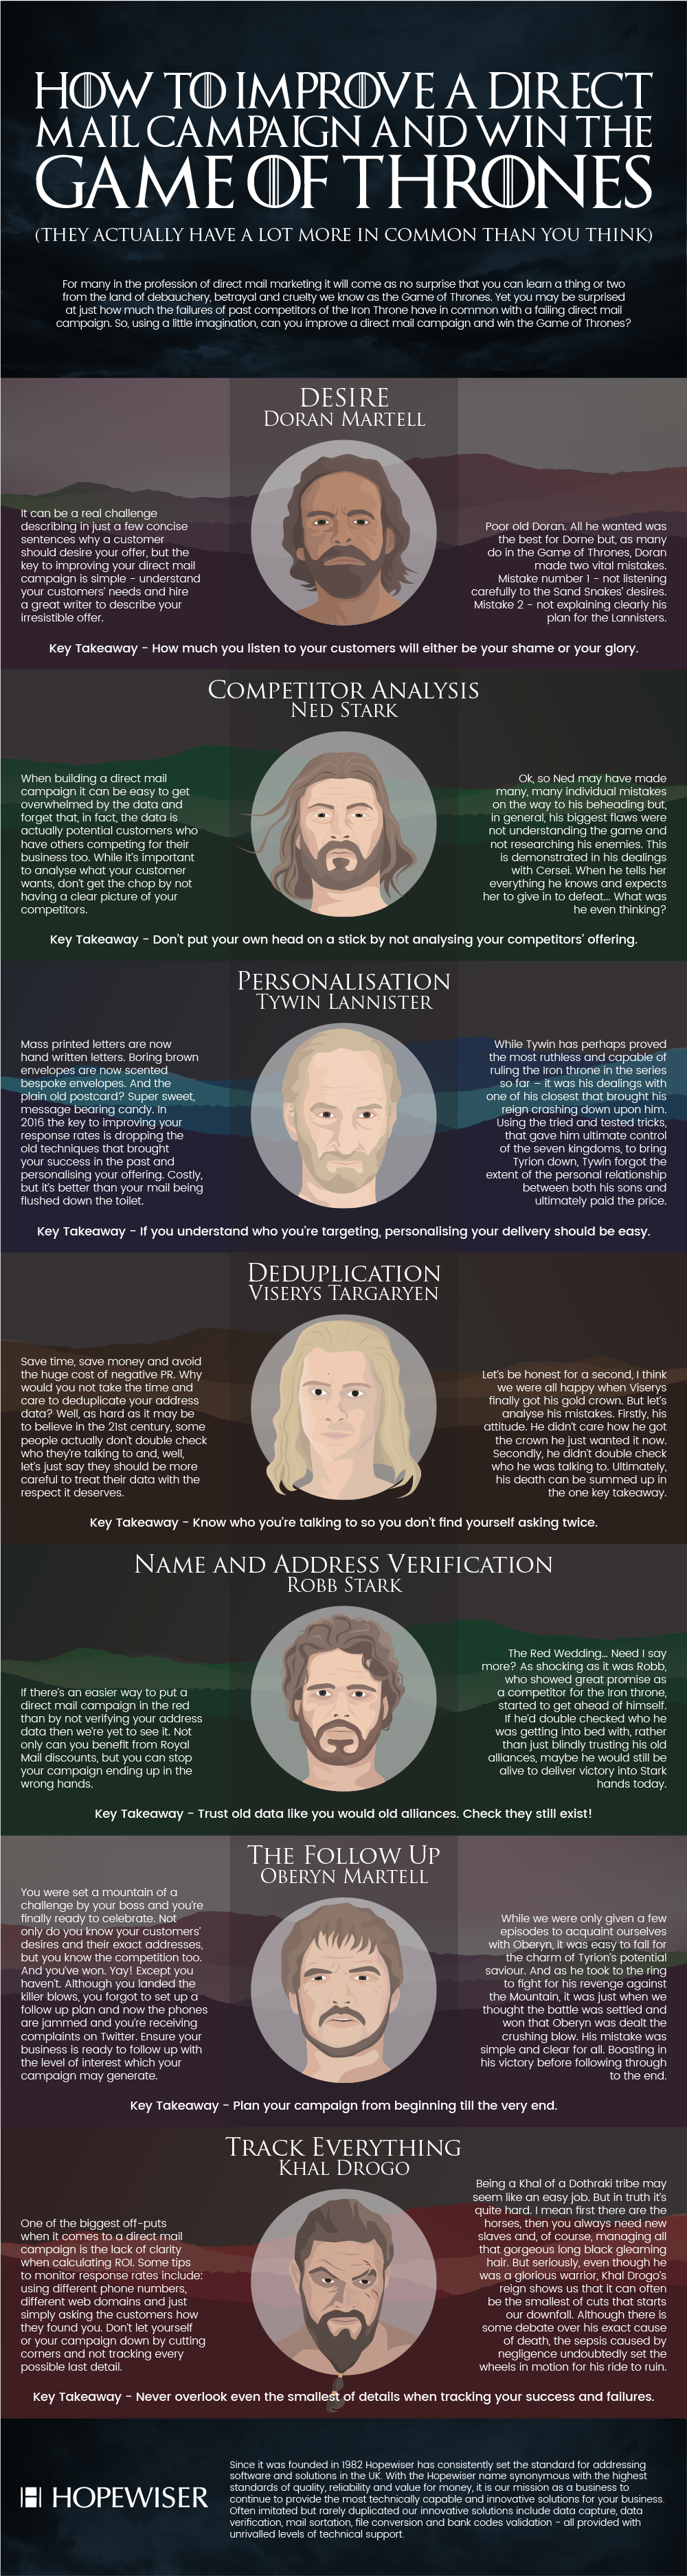 How to Improve a Direct Mail Campaign and Win the Game of Thrones [Infographic]